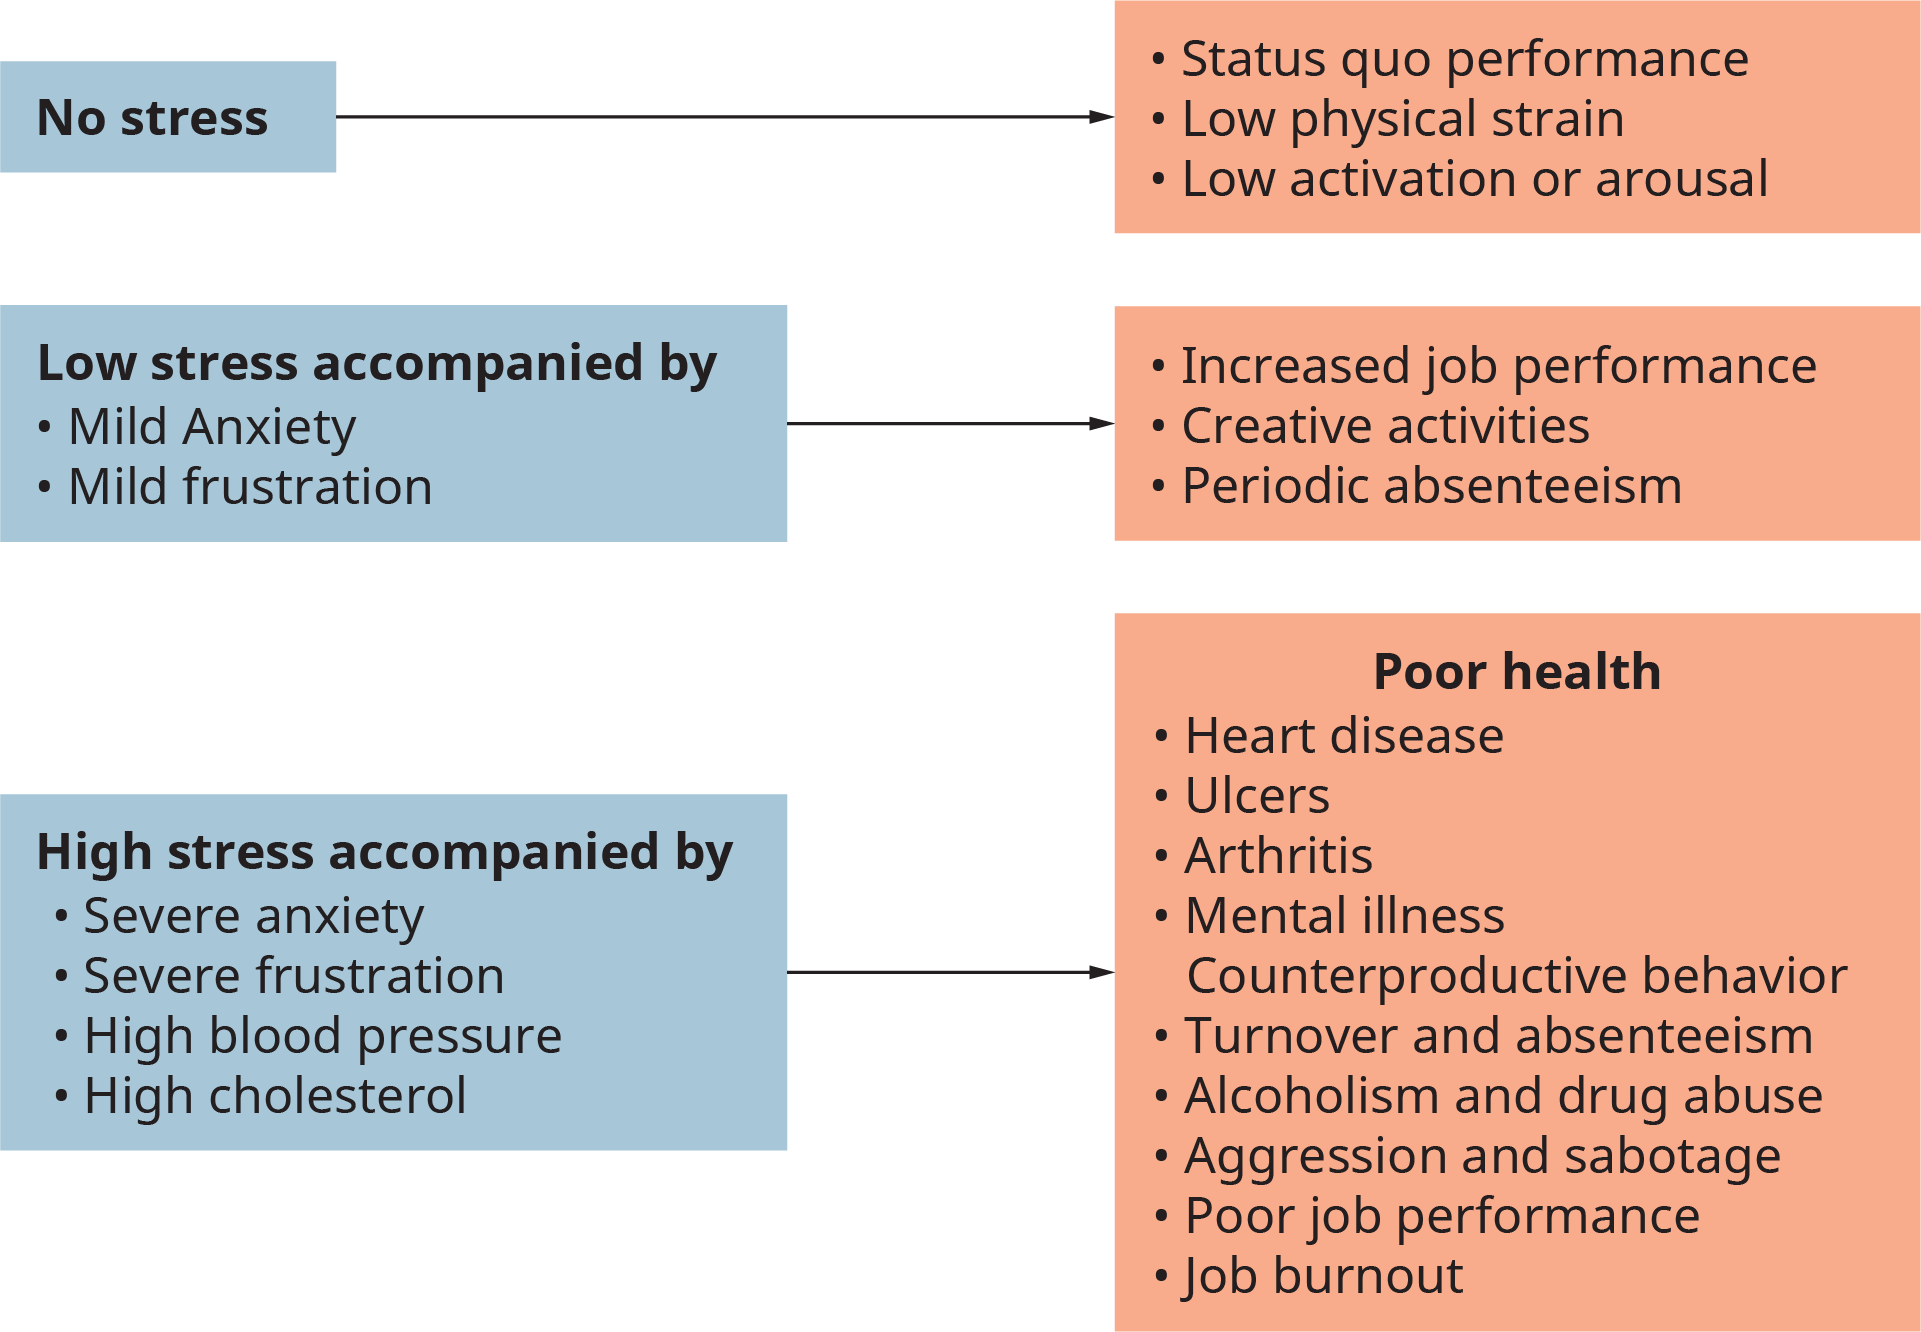 An illustration shows the major consequences at three different intensity levels of work-related stress.